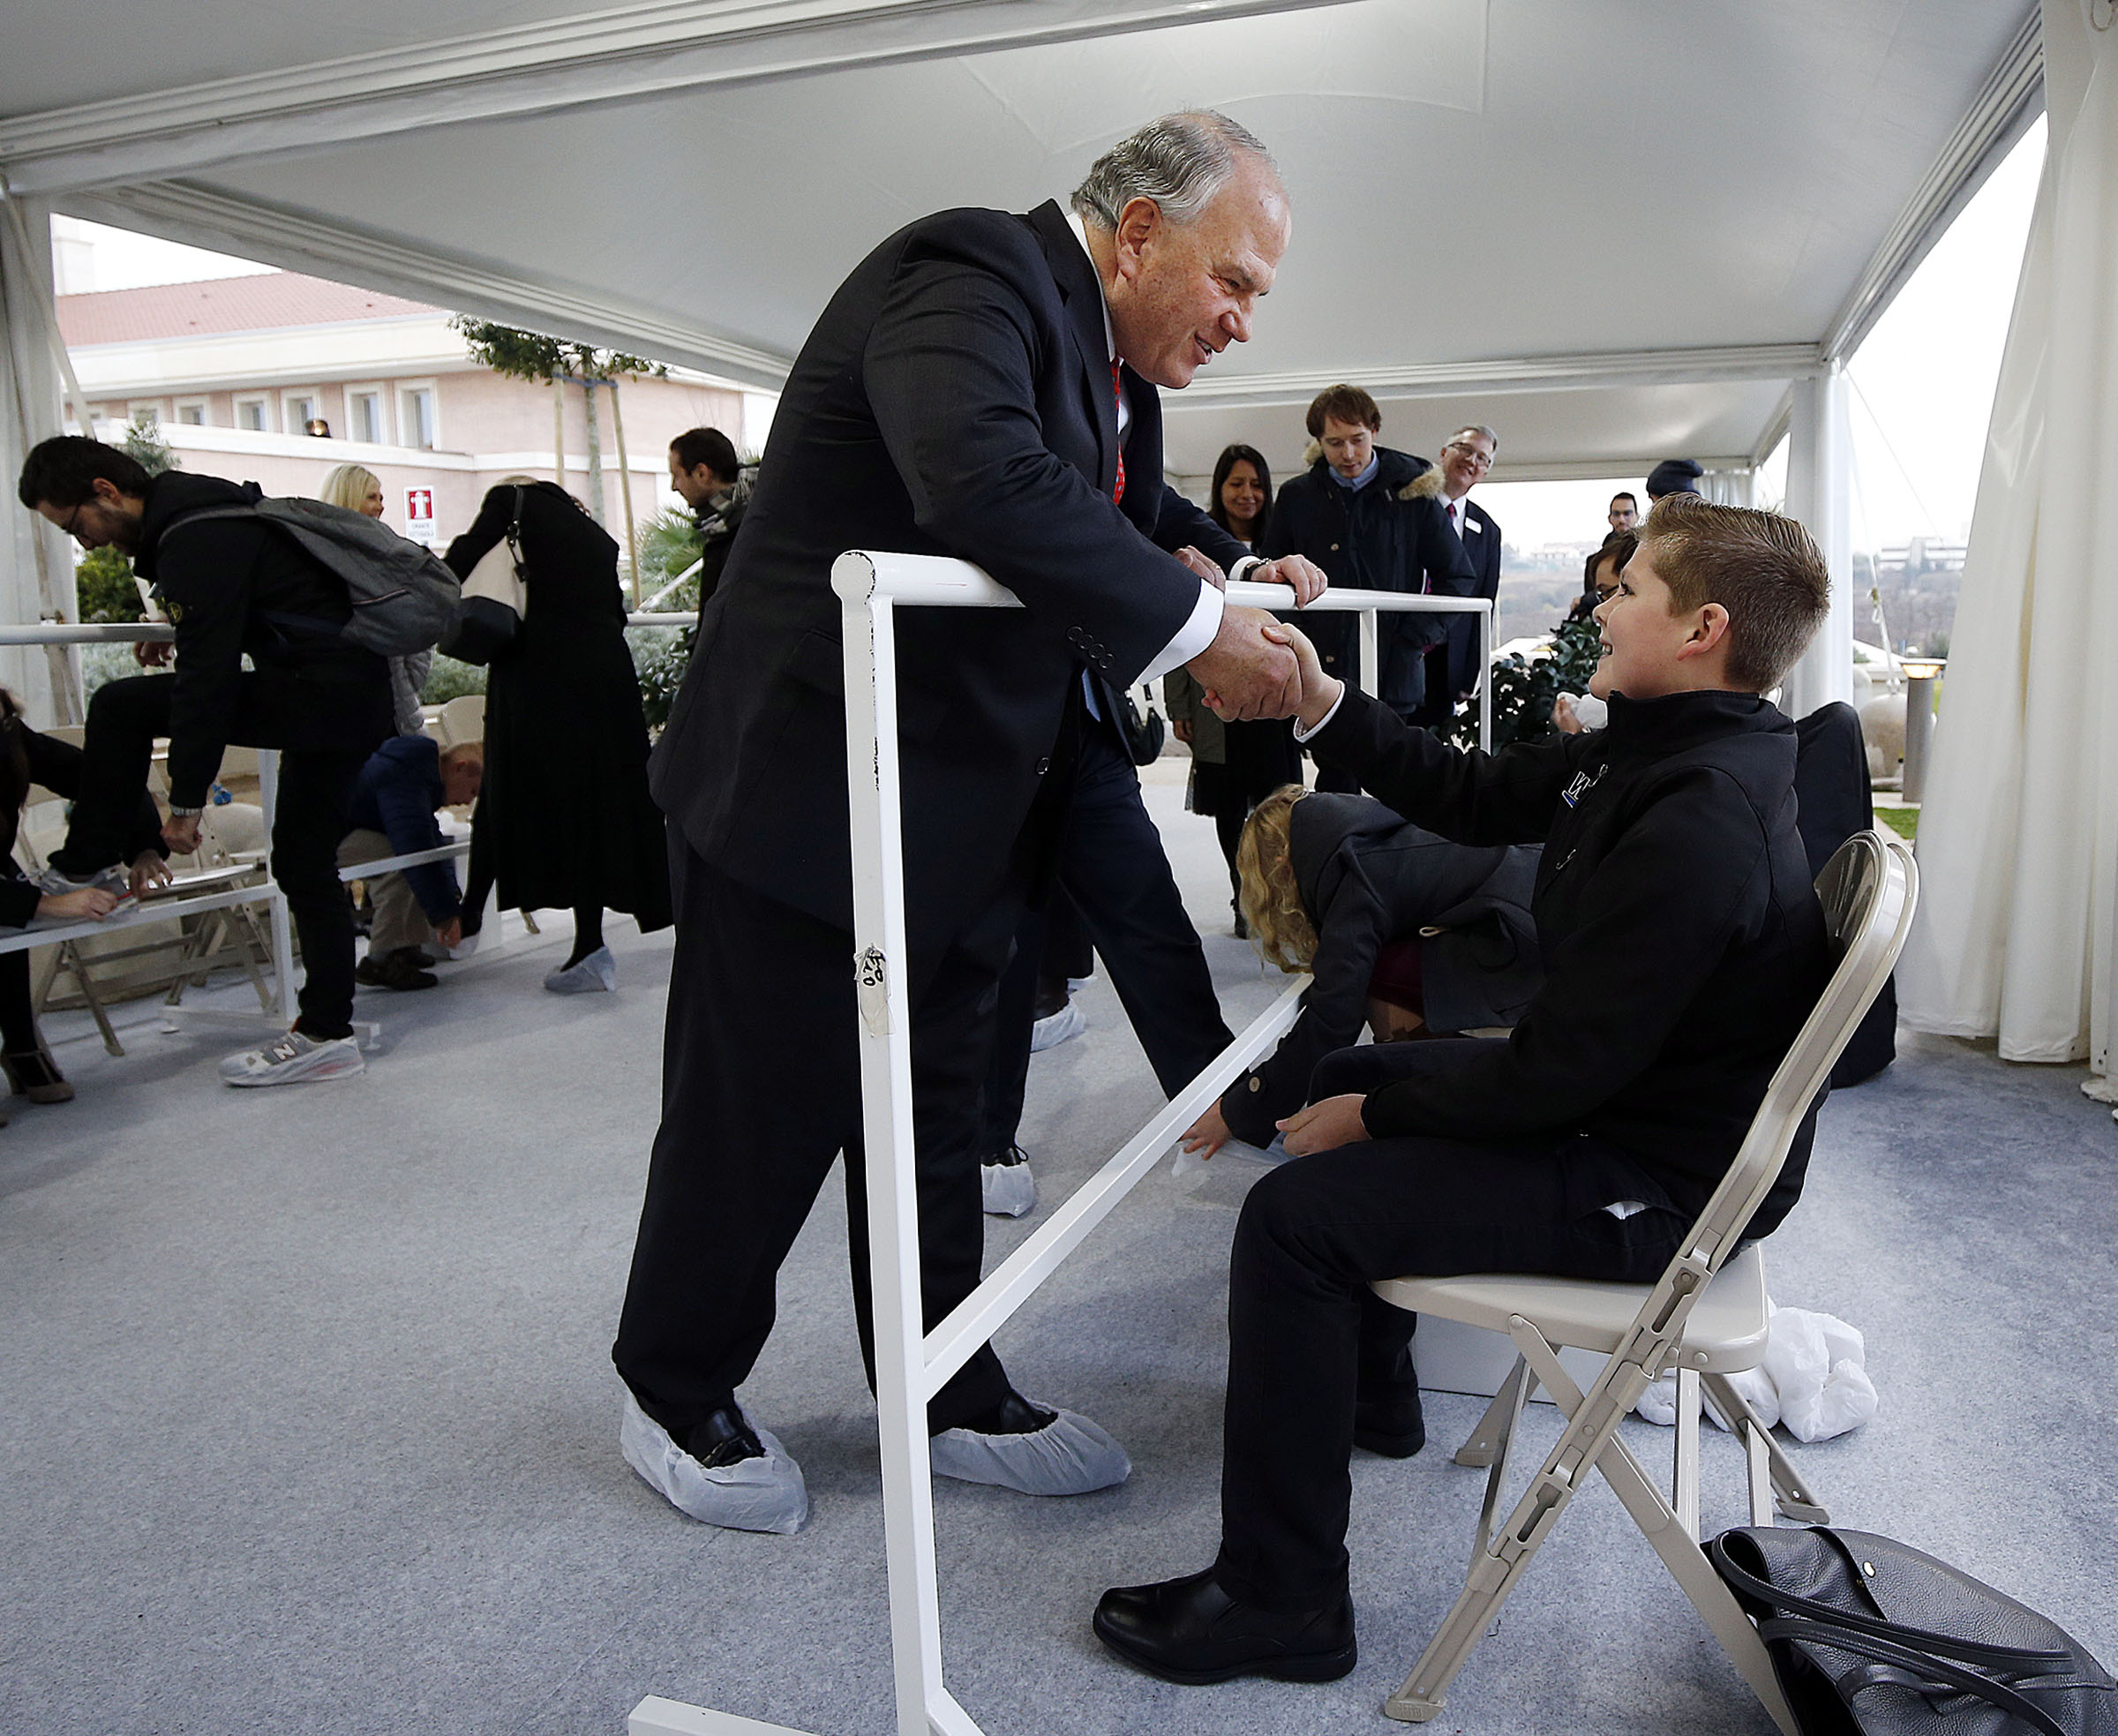 Elder Ronald A. Rasband of the Quorum of the Twelve Apostles of The Church of Jesus Christ of Latter-day Saints talks with Bryant Van Tassell after receiving shoe covers from him during the open house for the Rome Italy Temple on Monday, Jan. 14, 2019.